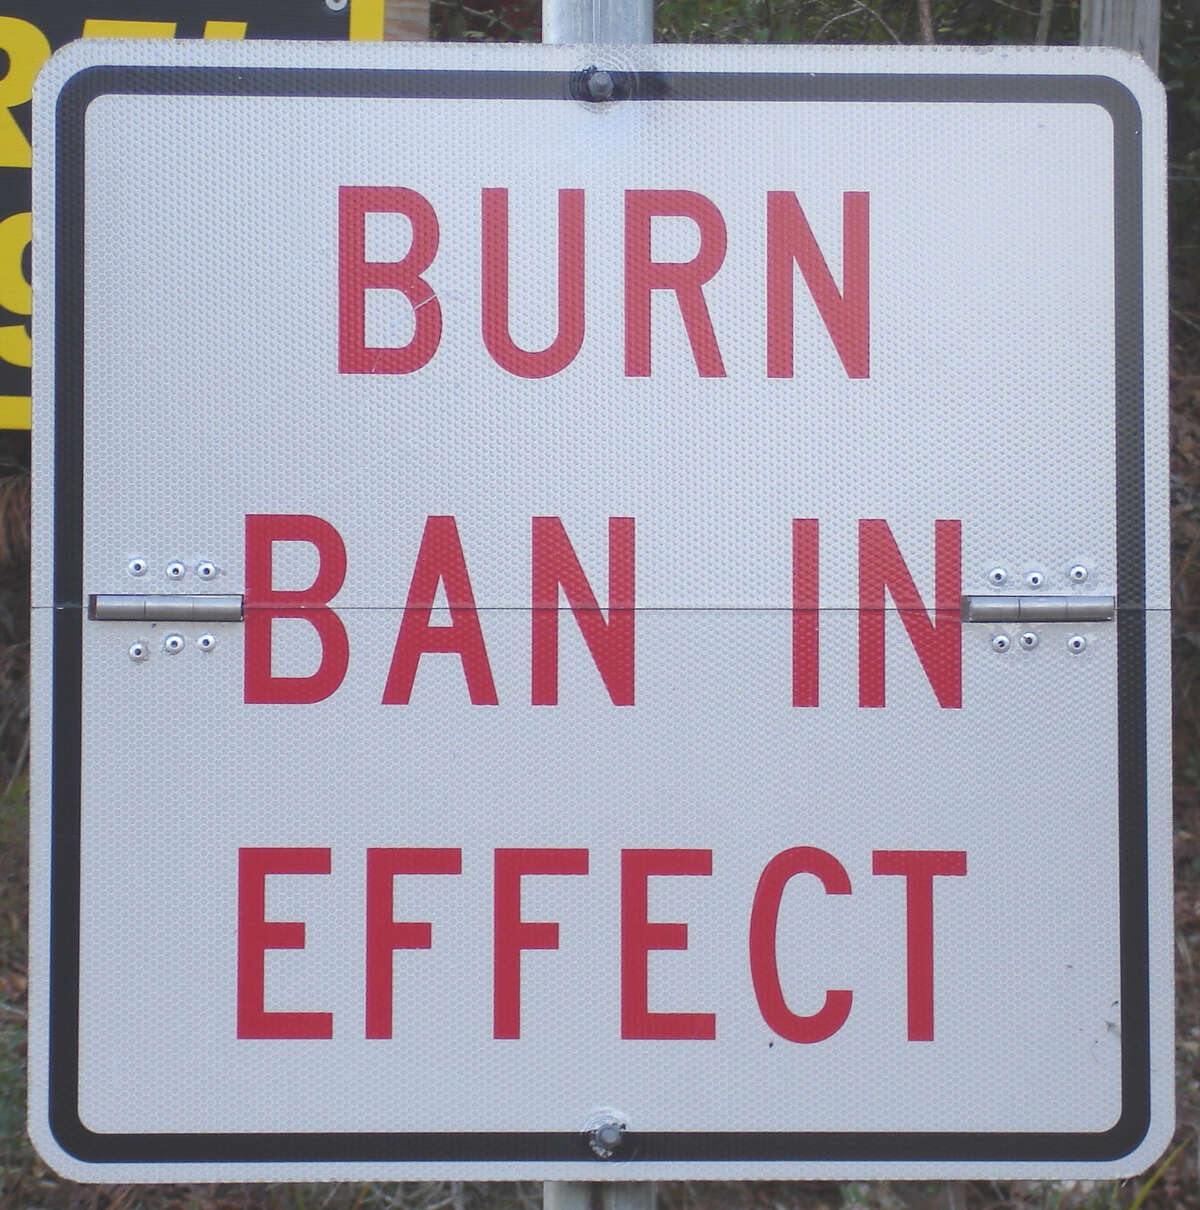 A burn ban is in effect for Liberty County until further notice.